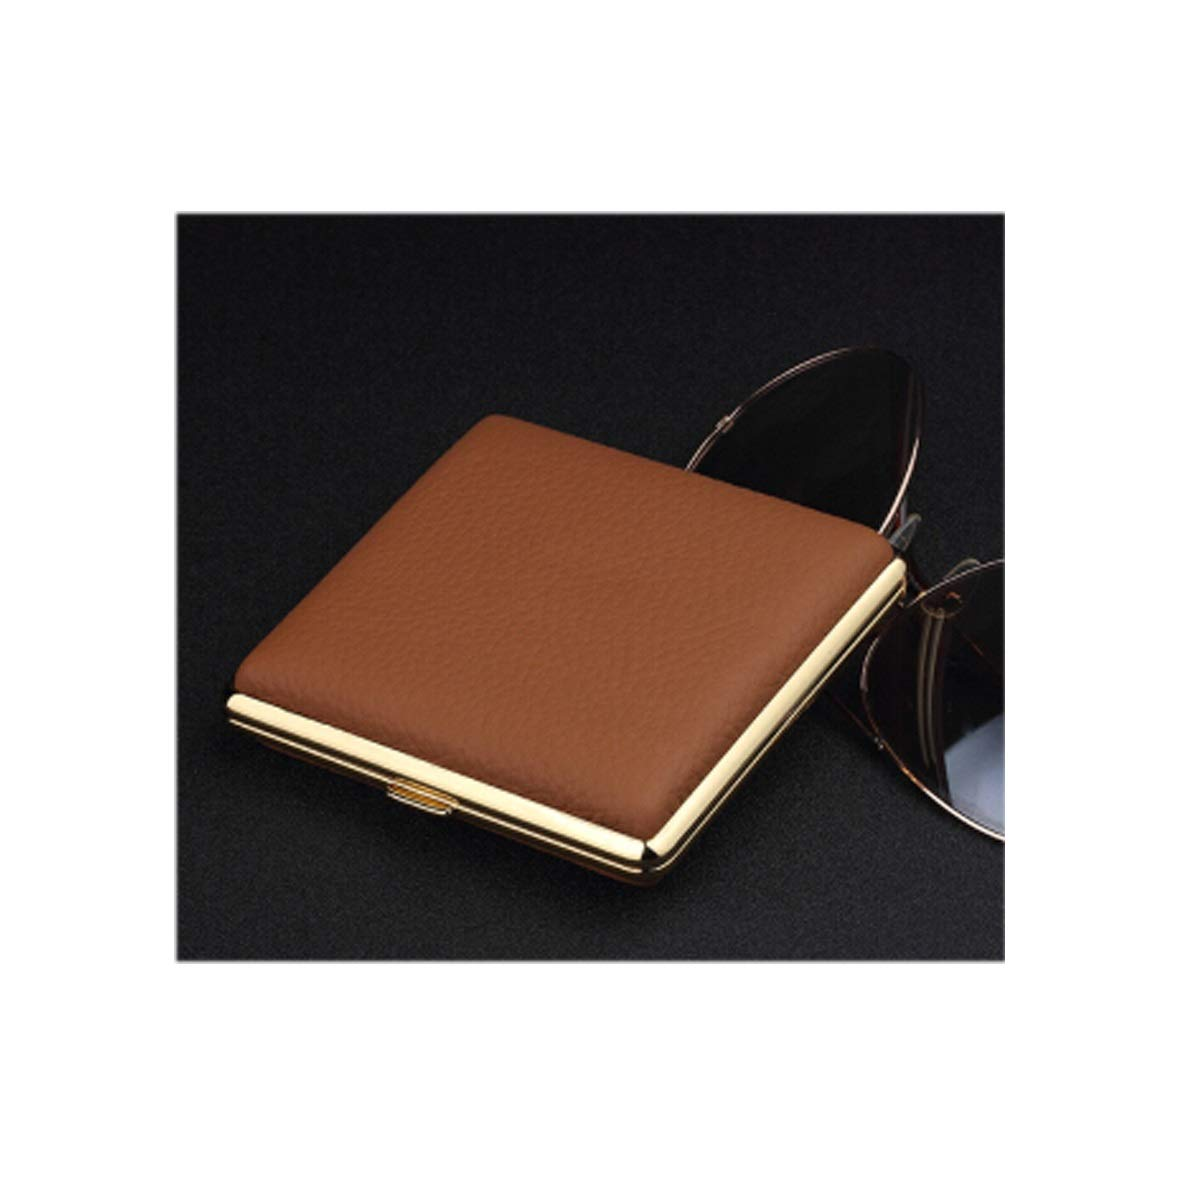 CHENTAOCS 20-Piece Leather Cigarette Case, Brown Lychee Cigarette Case, Stainless Steel Leather Case, 20 Ultra-Thin Moisture-Proof and Portable, Black Products (Color : Brown)